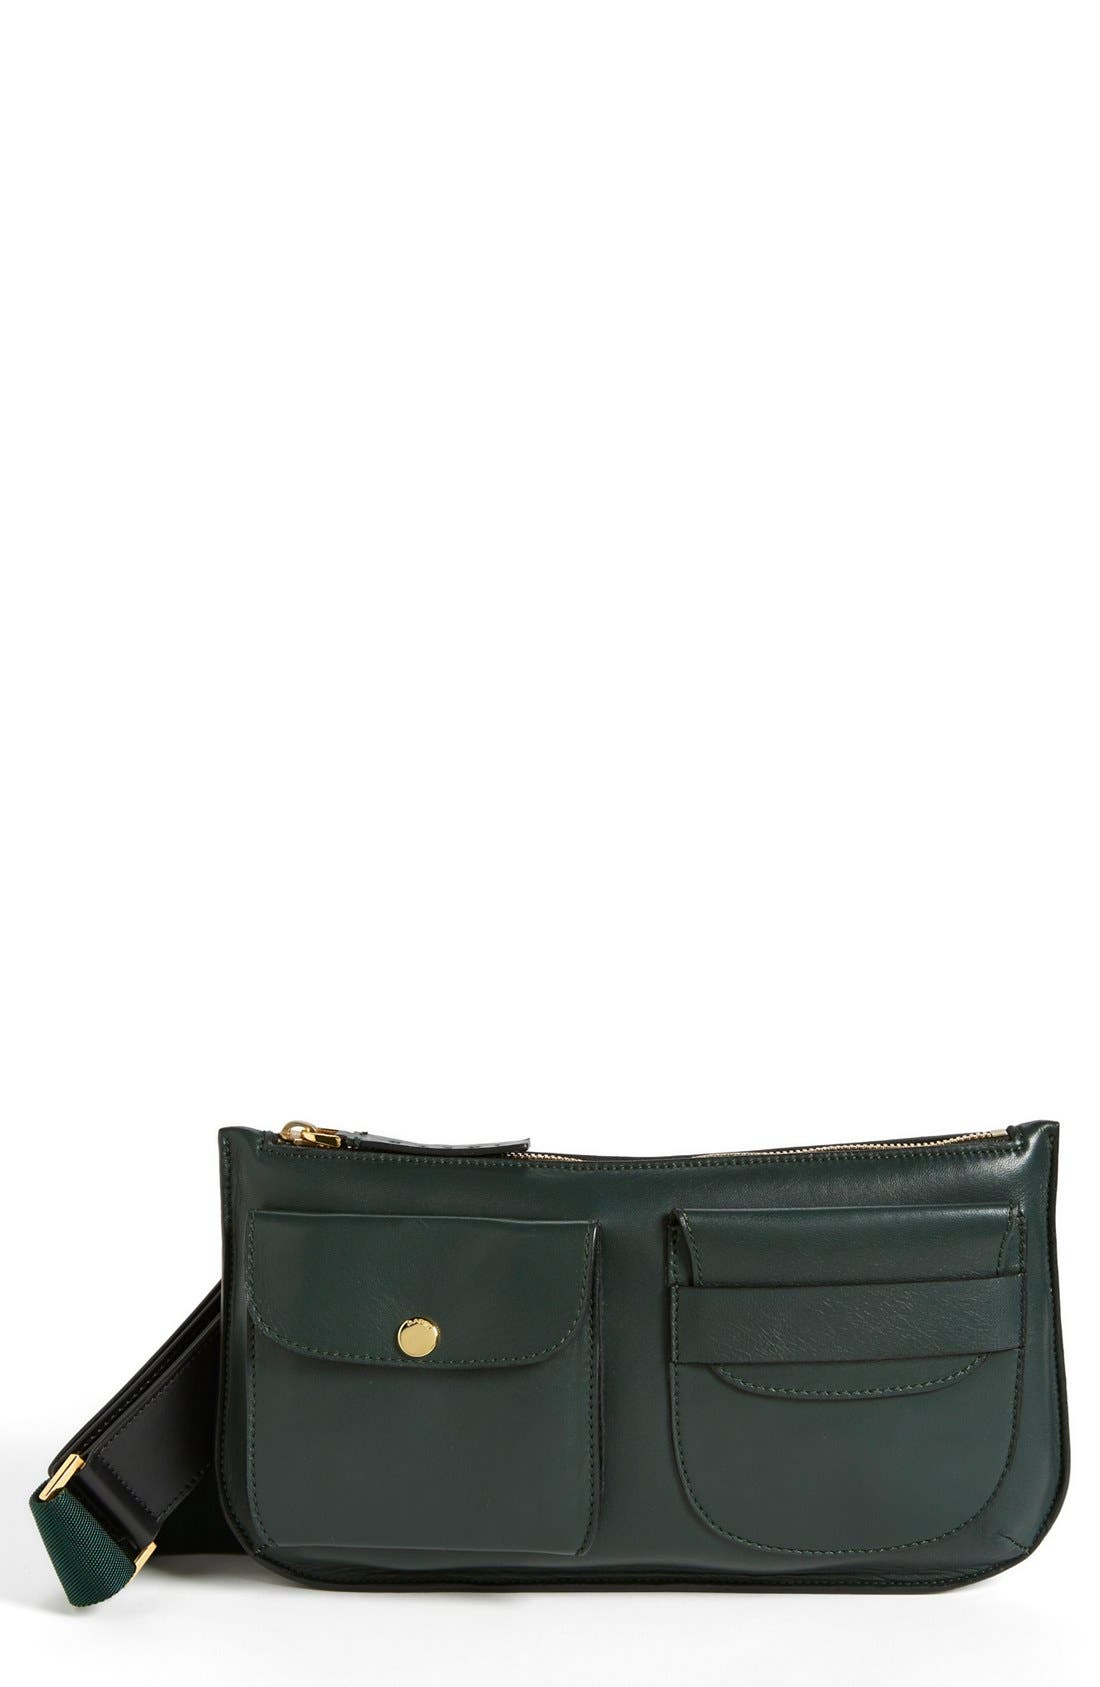 Main Image - Marni Leather Belt Bag